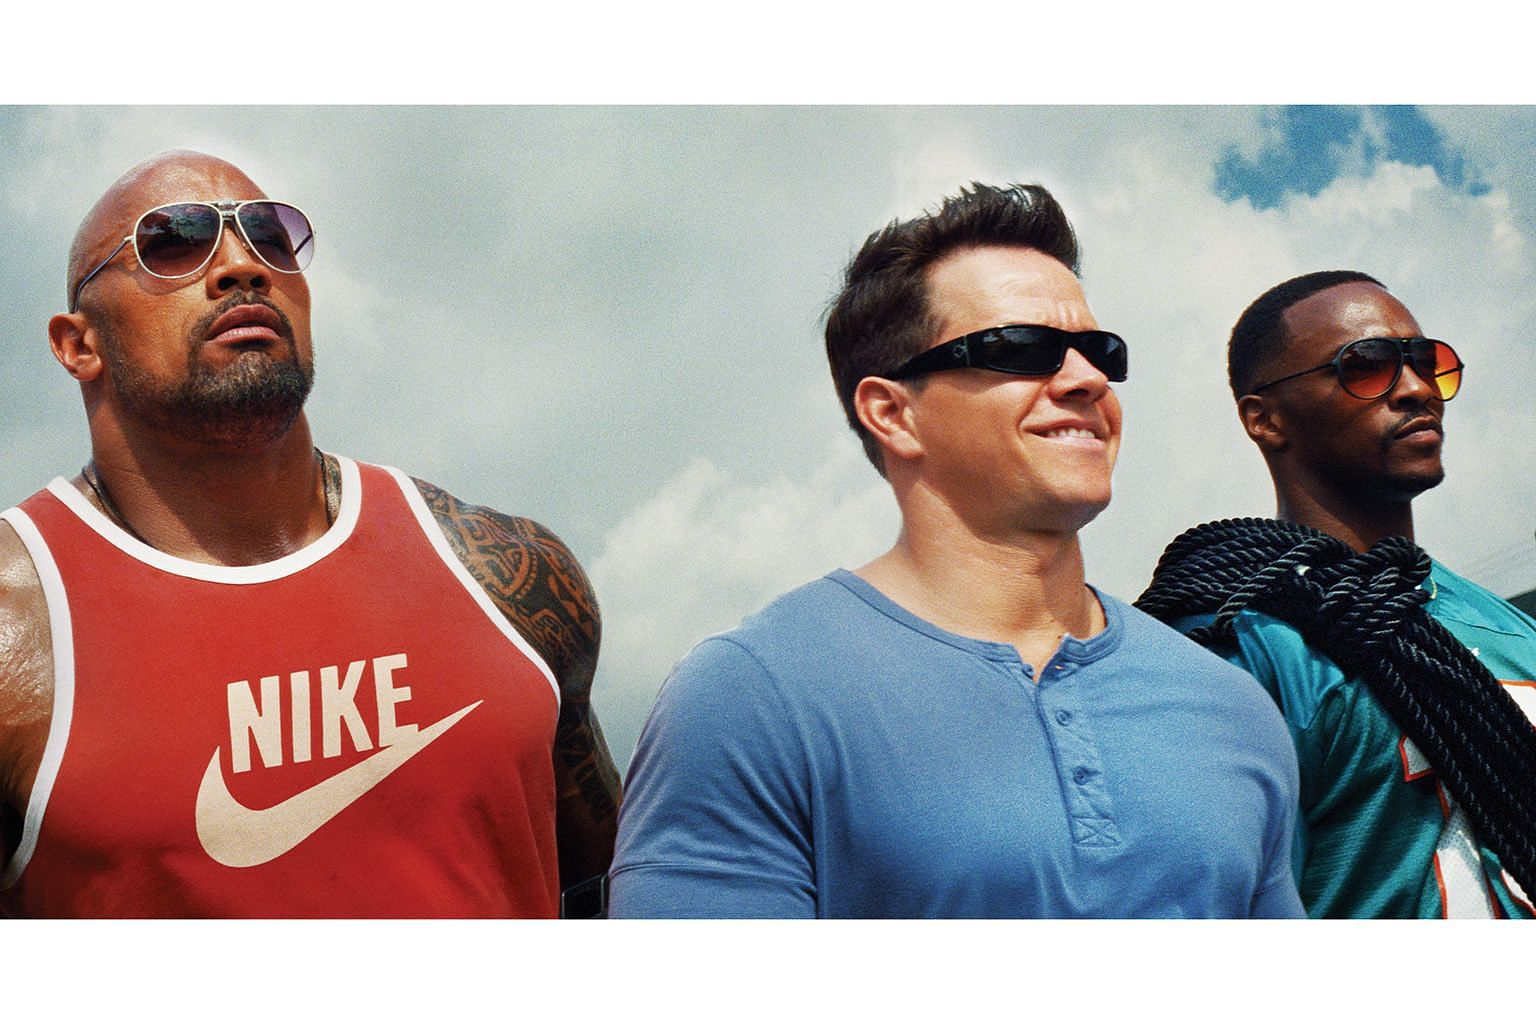 Pain & Gain stars (from far left) Dwayne Johnson, Mark Wahlberg and Anthony Mackie.Monty Python And The Holy Grail (far left) pokes fun at mediaeval England, while superhero comedy Mystery Men (left) is elevated by great acting.